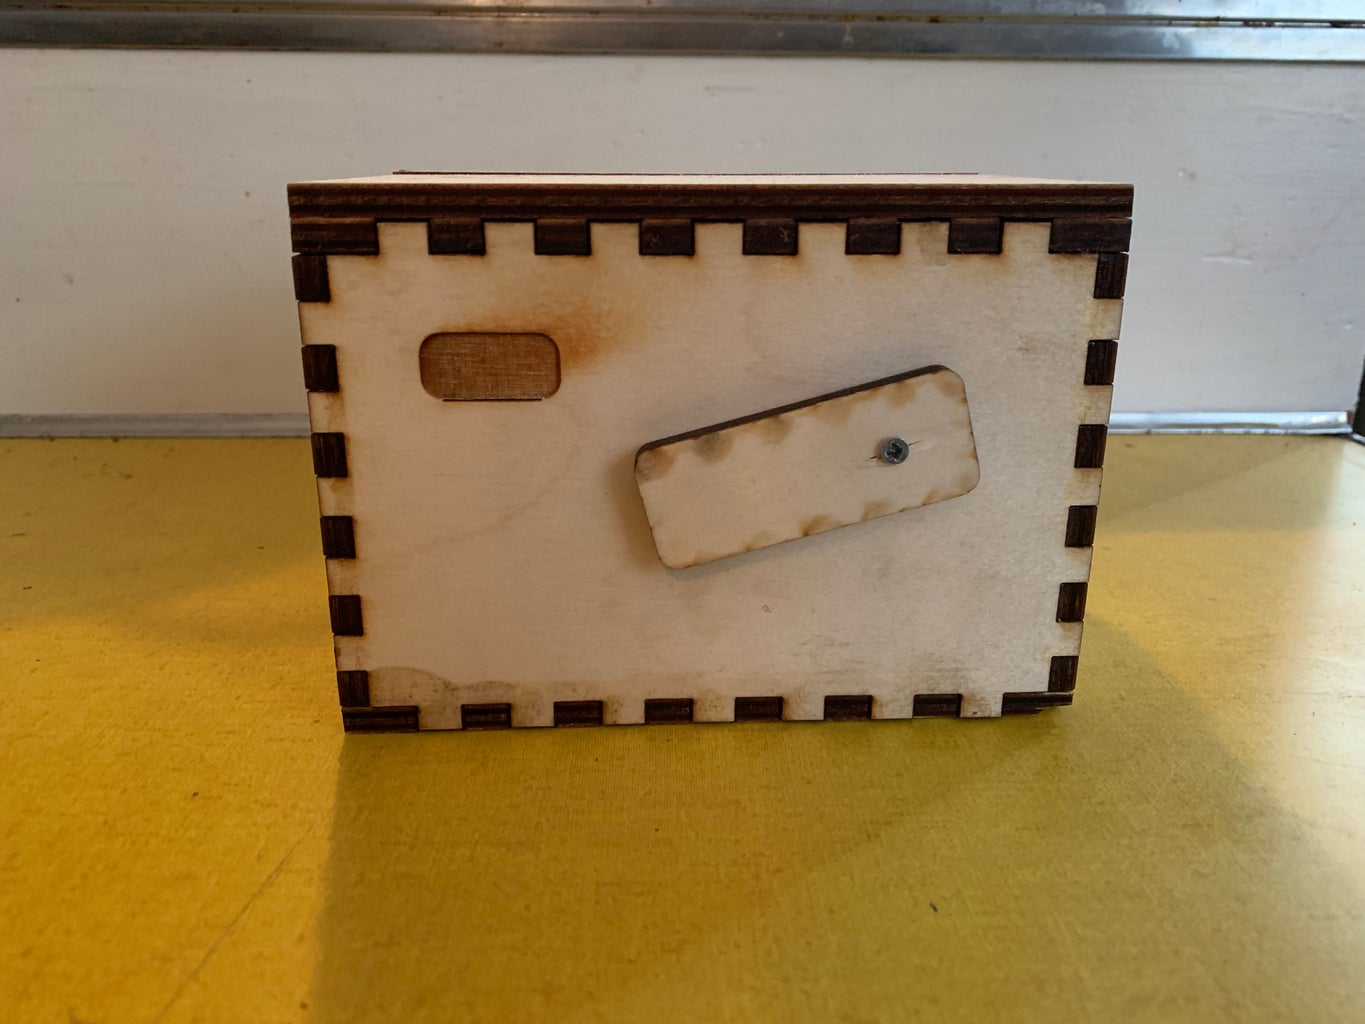 Making a Pinhole Camera With a Laser Cutter